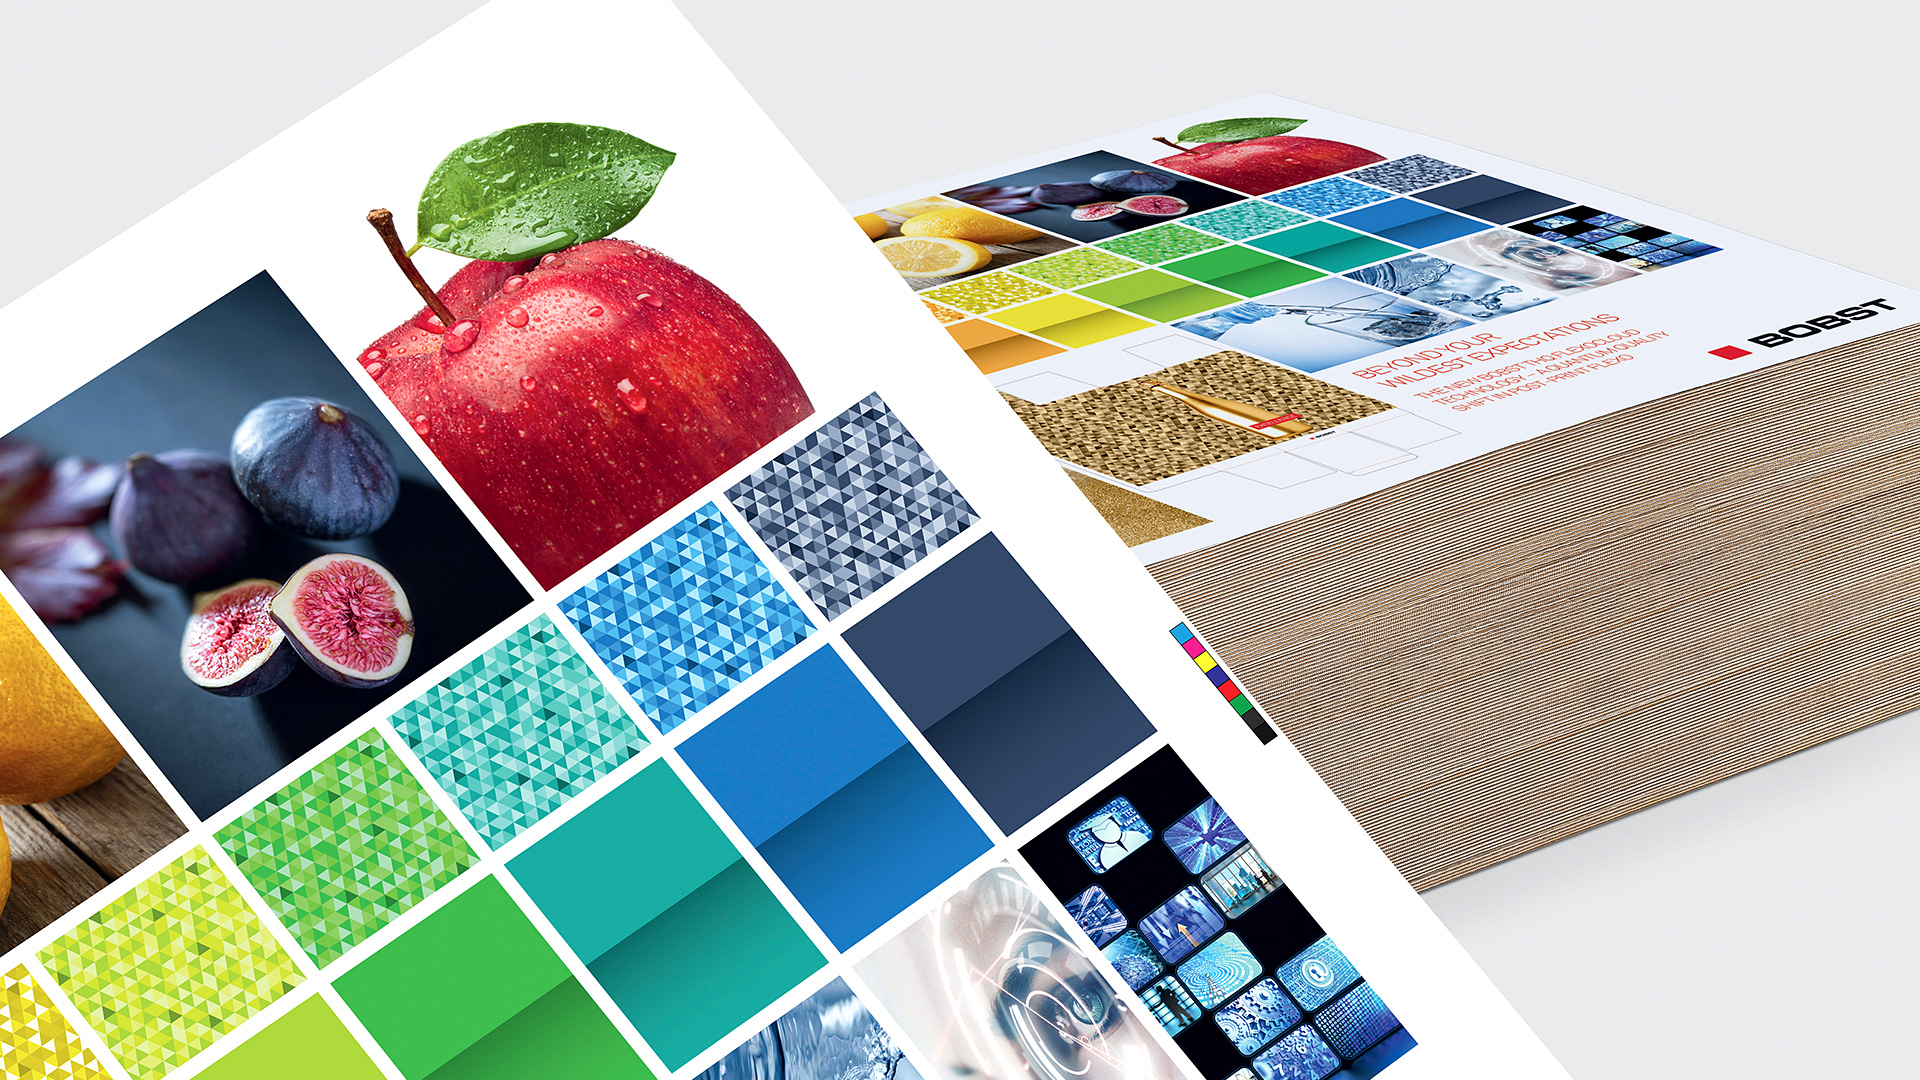 Color printing bobst - 100 Match Of Printing With Ready To Print